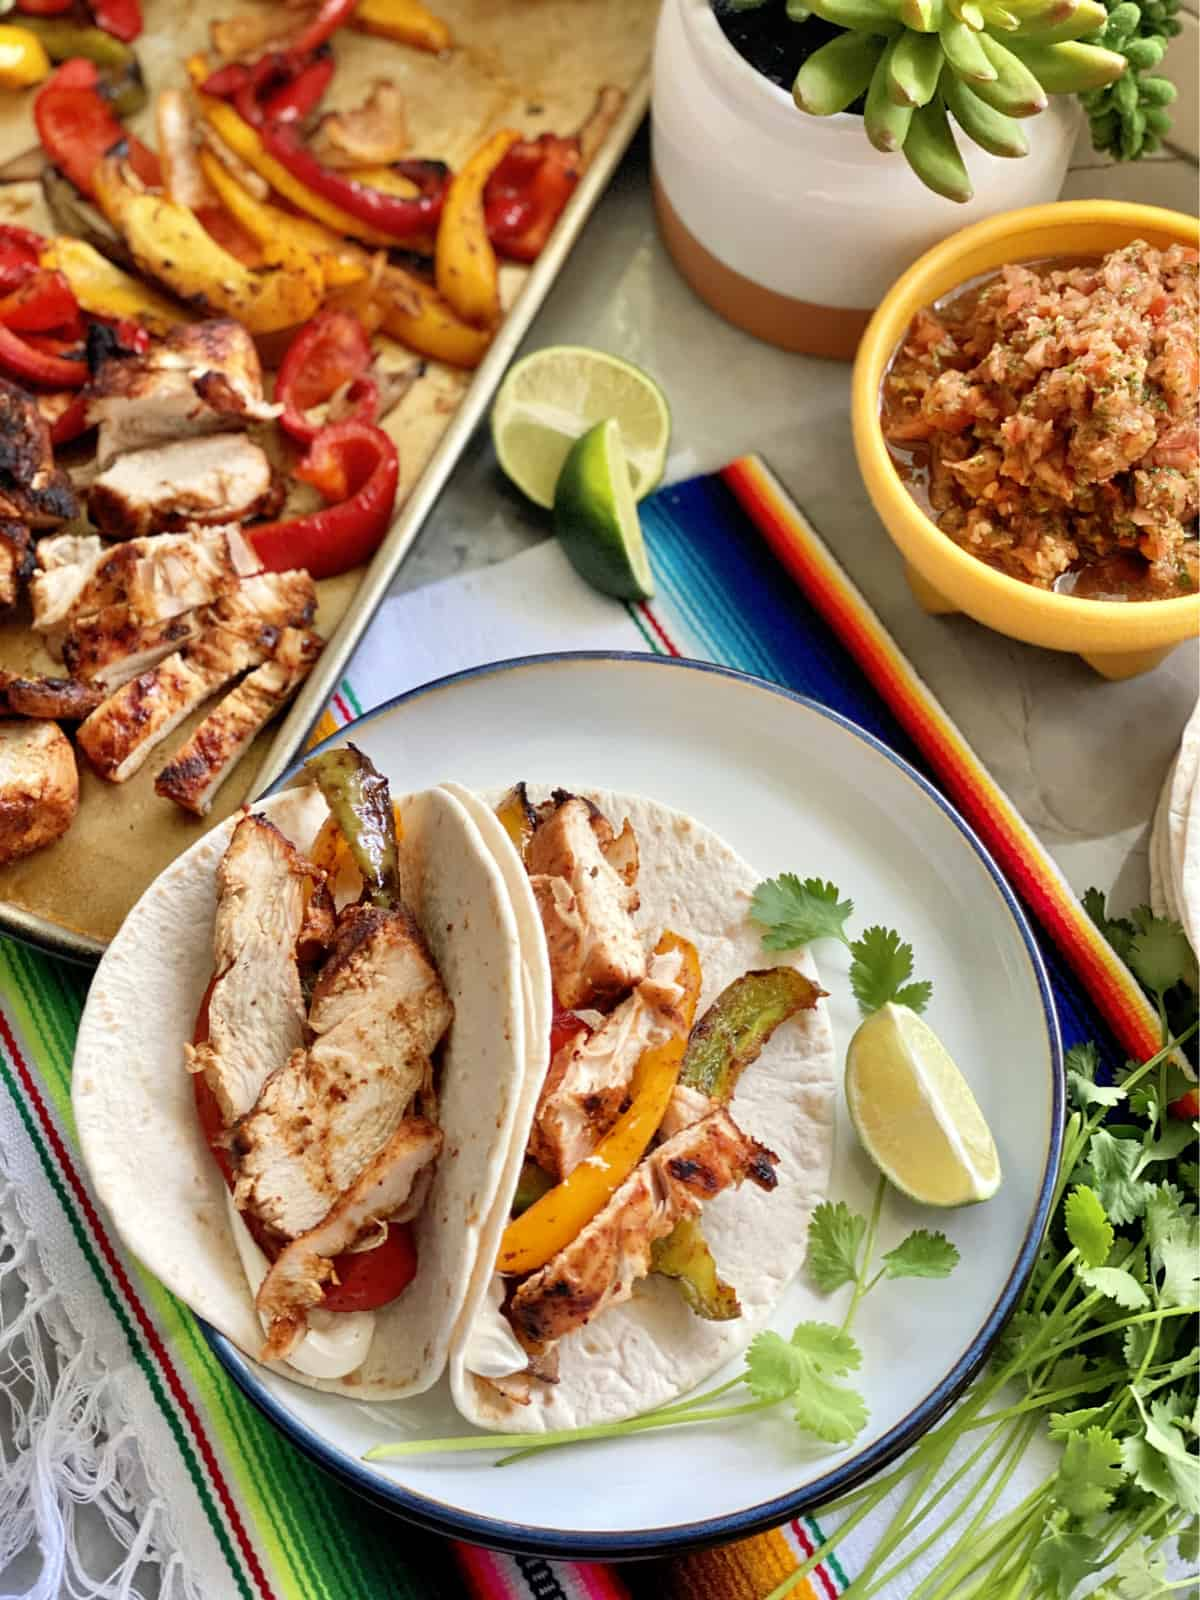 Top view of grilled chicken and peppers in two flour tortilla on a plate with salsa next to it.